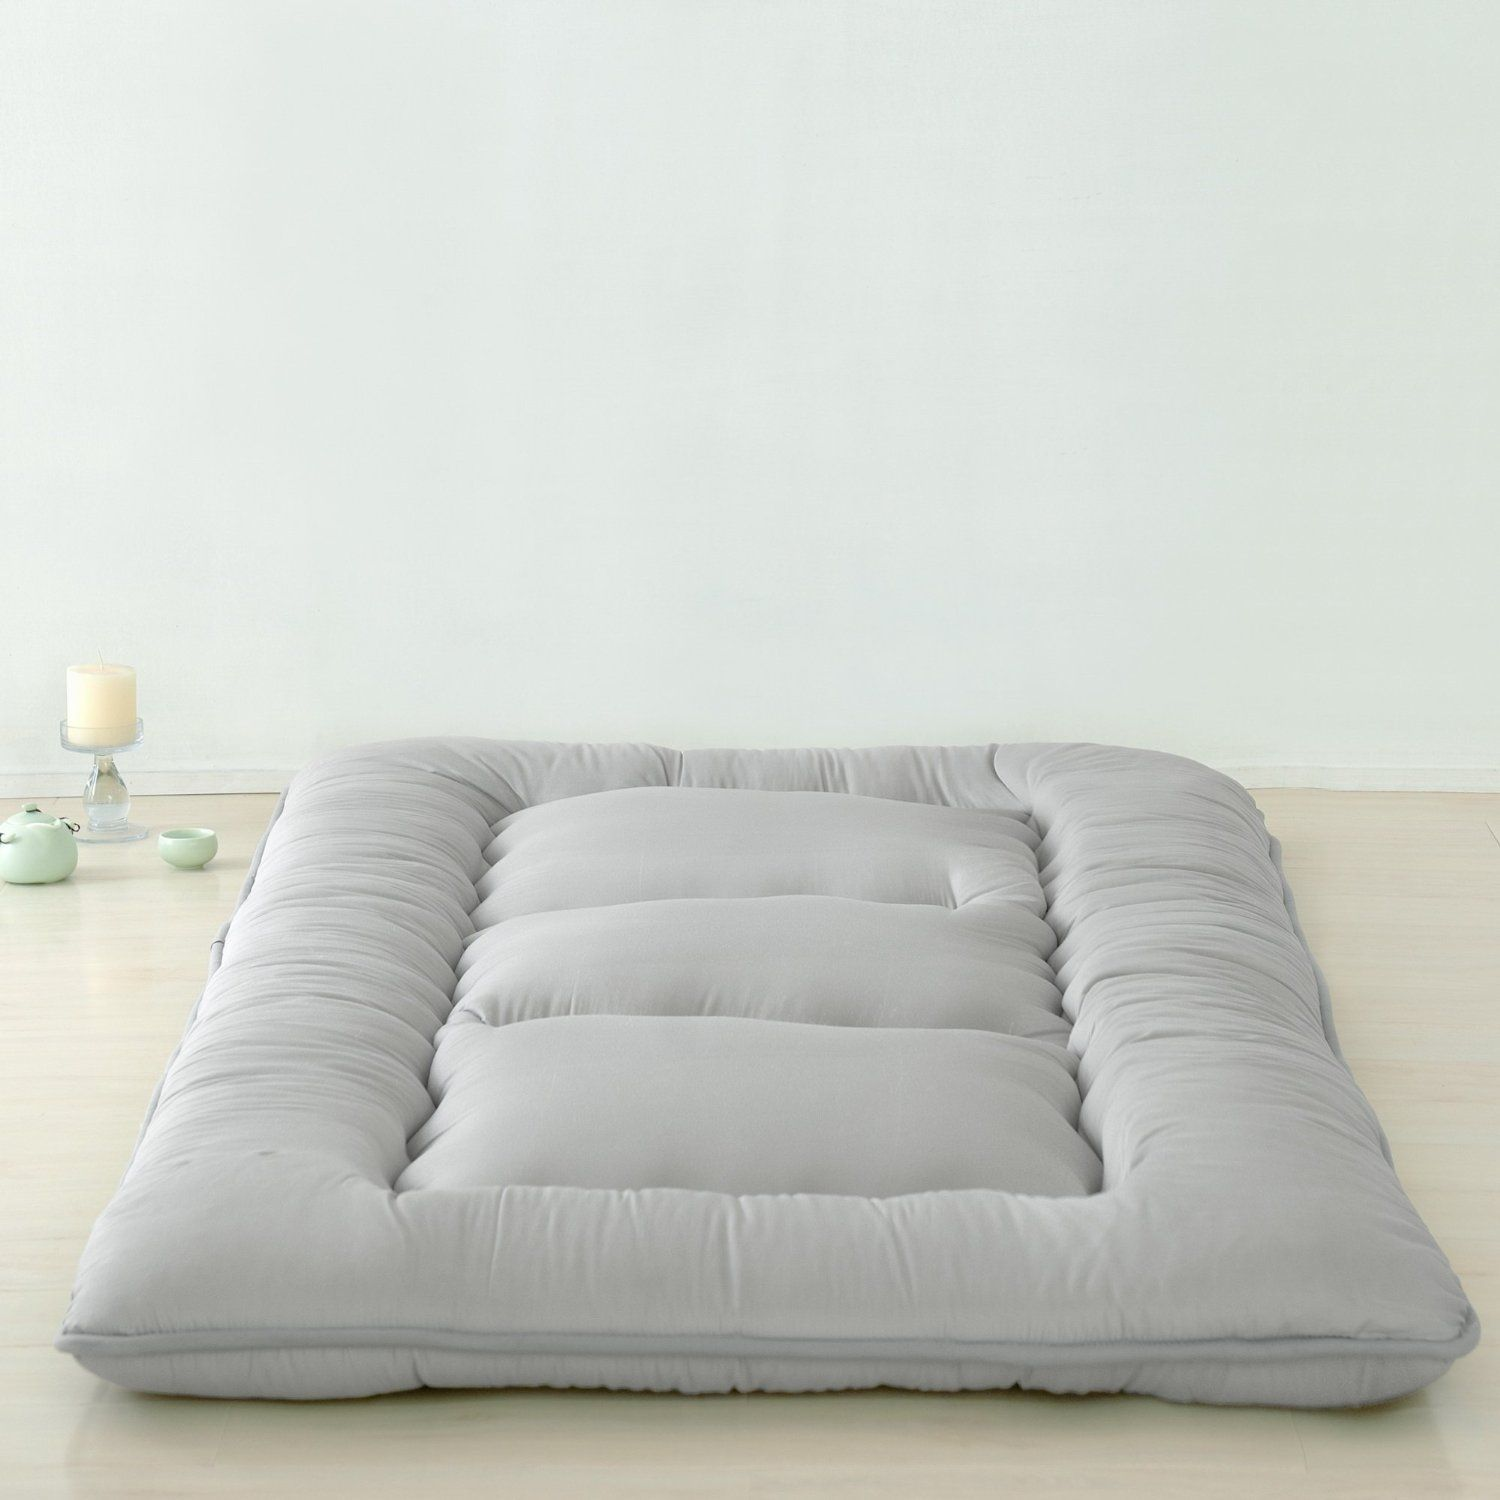 amazon: light grey futon tatami mat japanese futon mattress